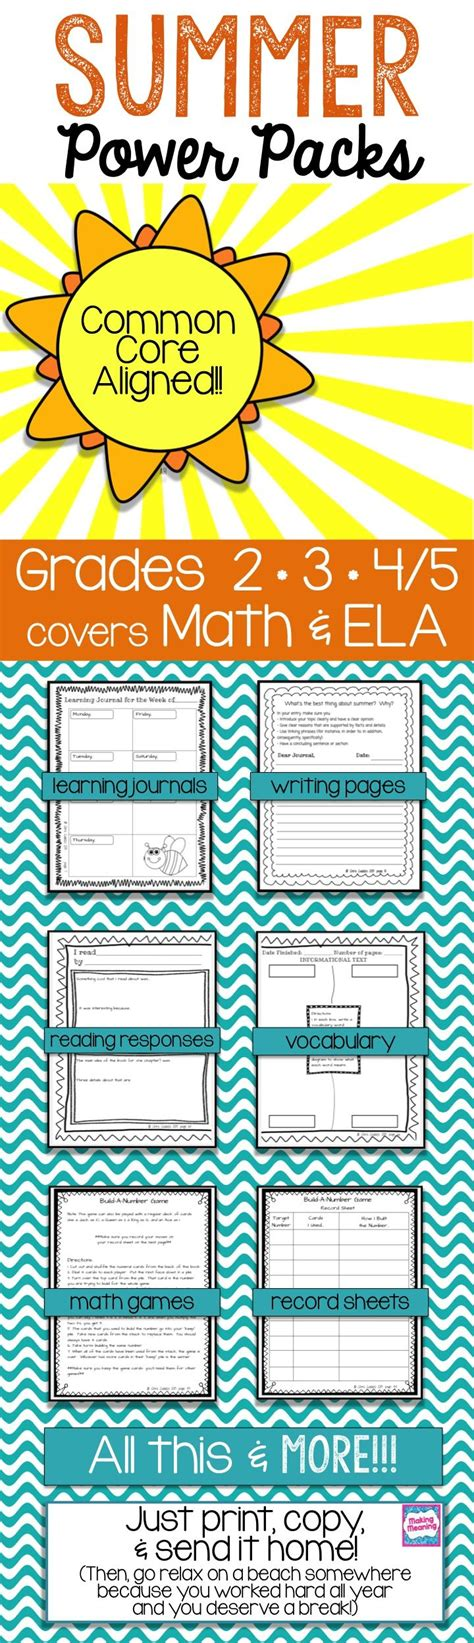 printable summer review packets common math and